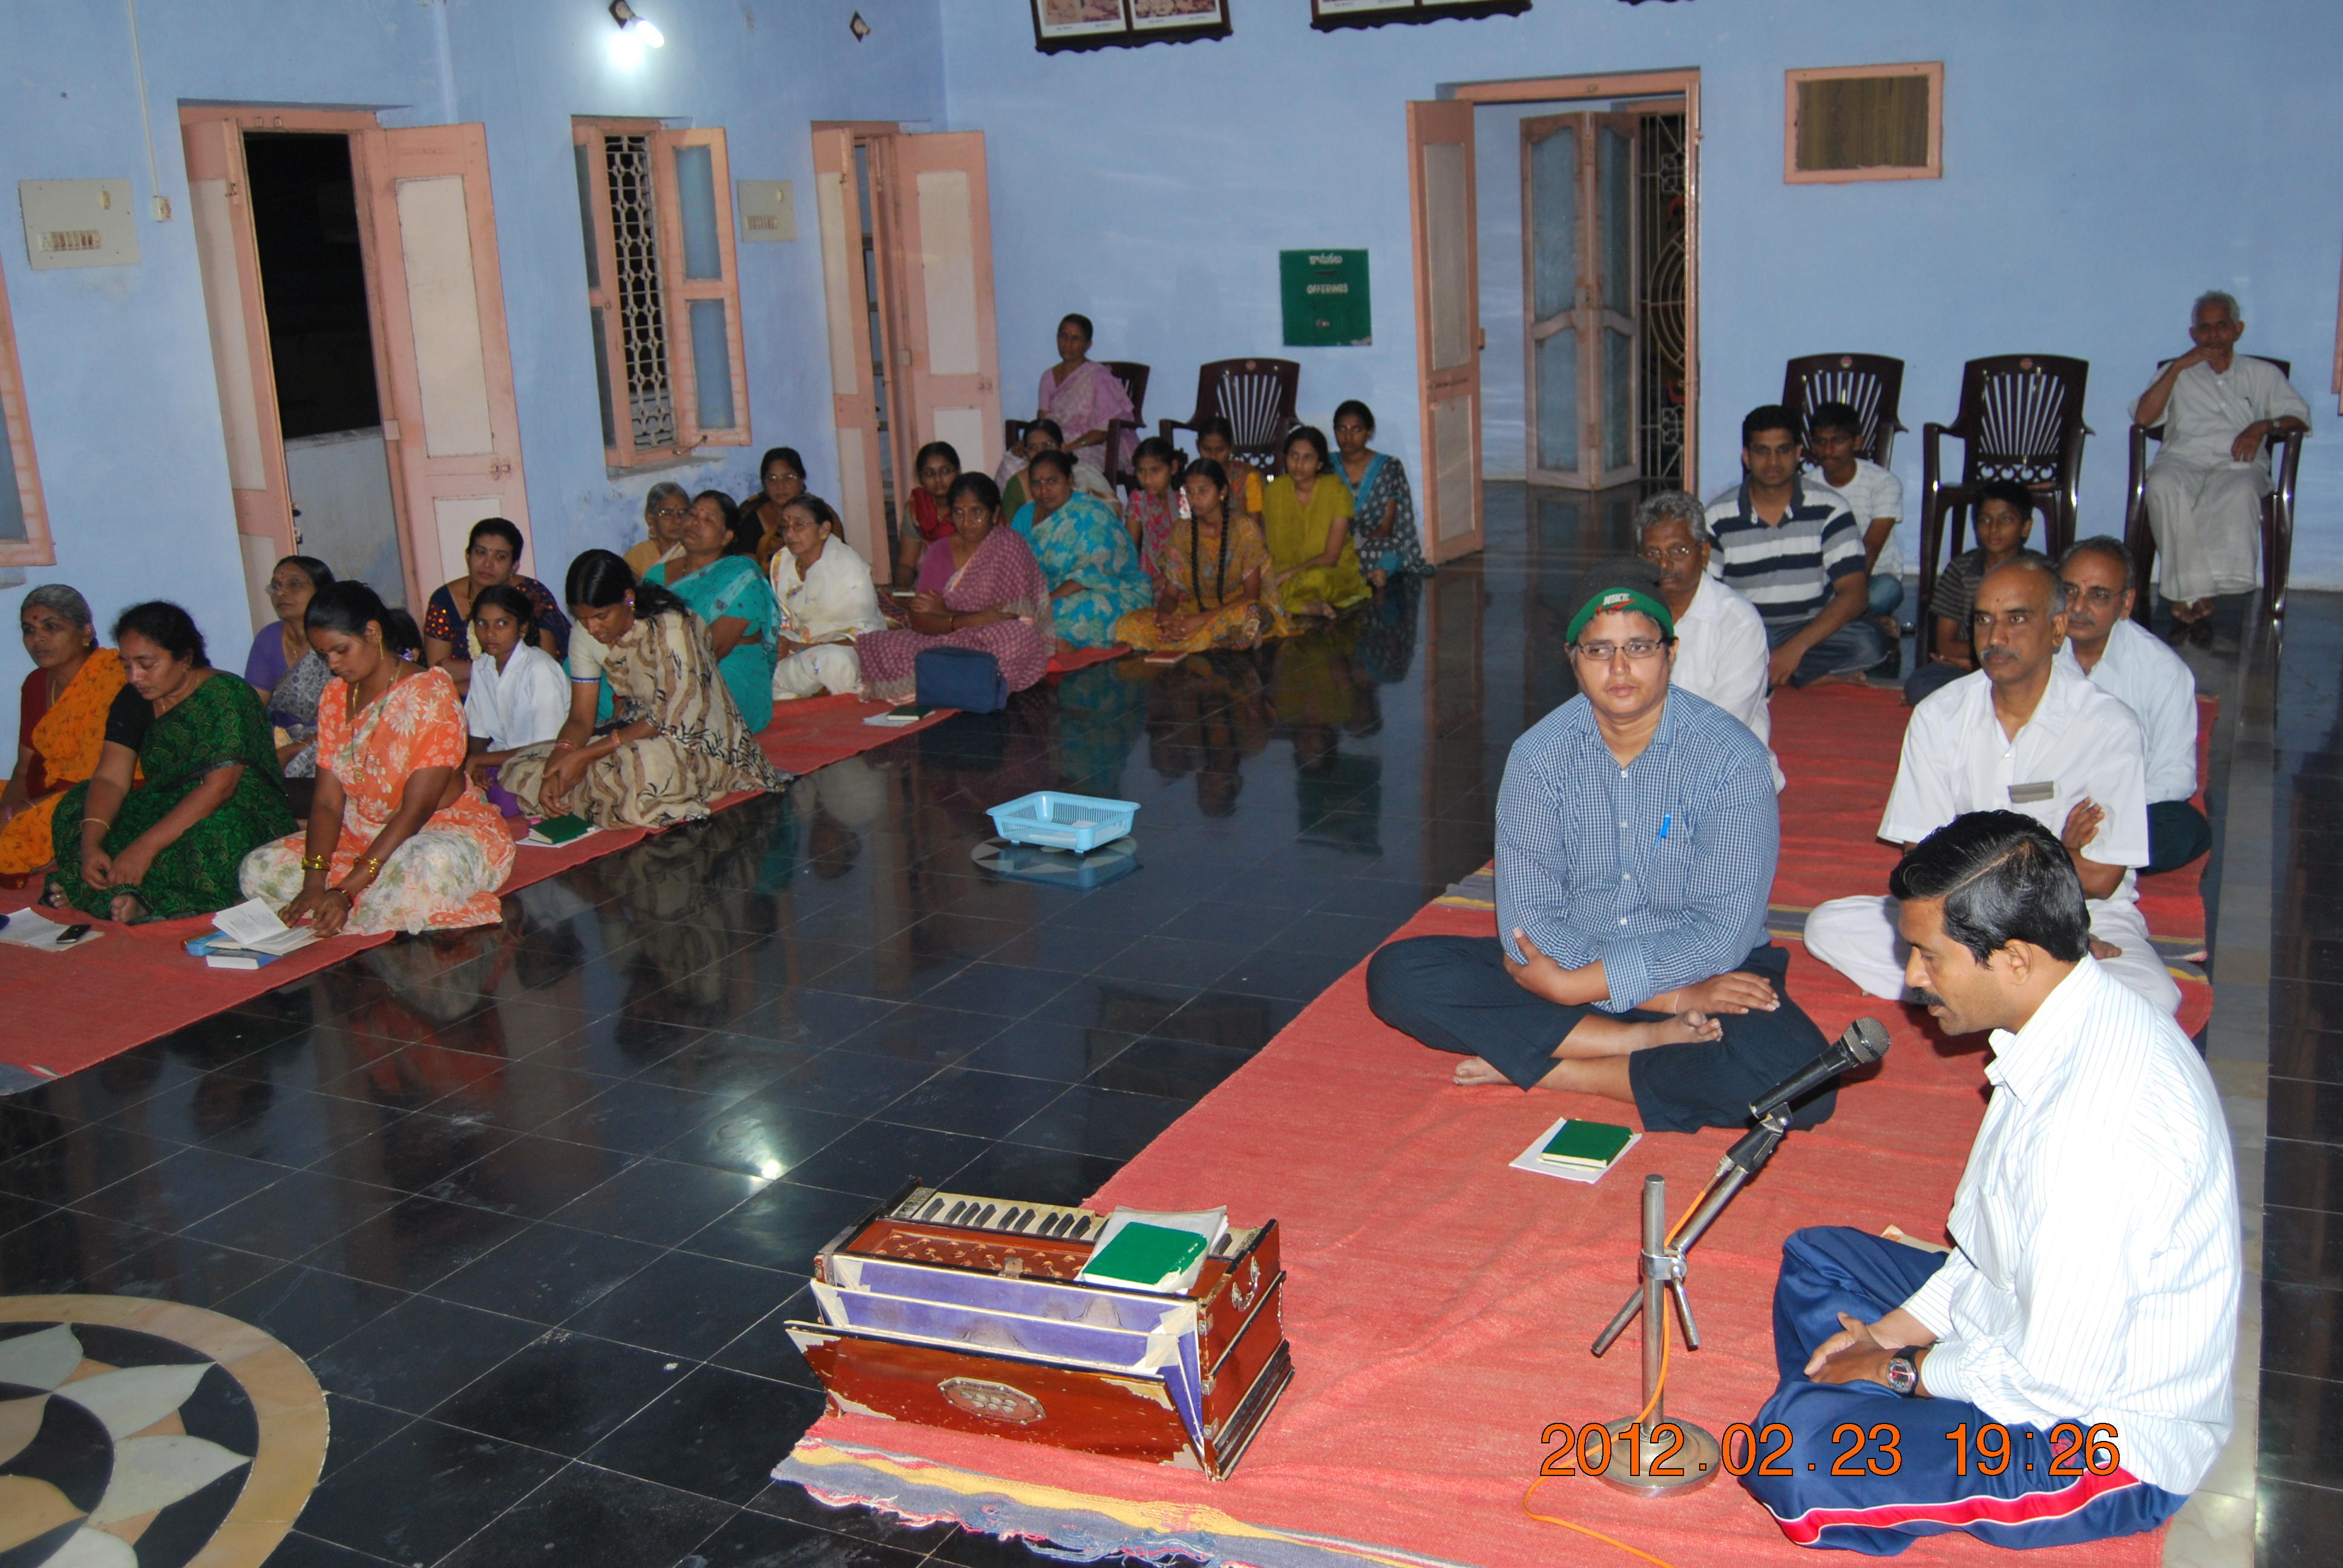 Gathering of Devotees. Speech by Dr. N. Ramagopal.